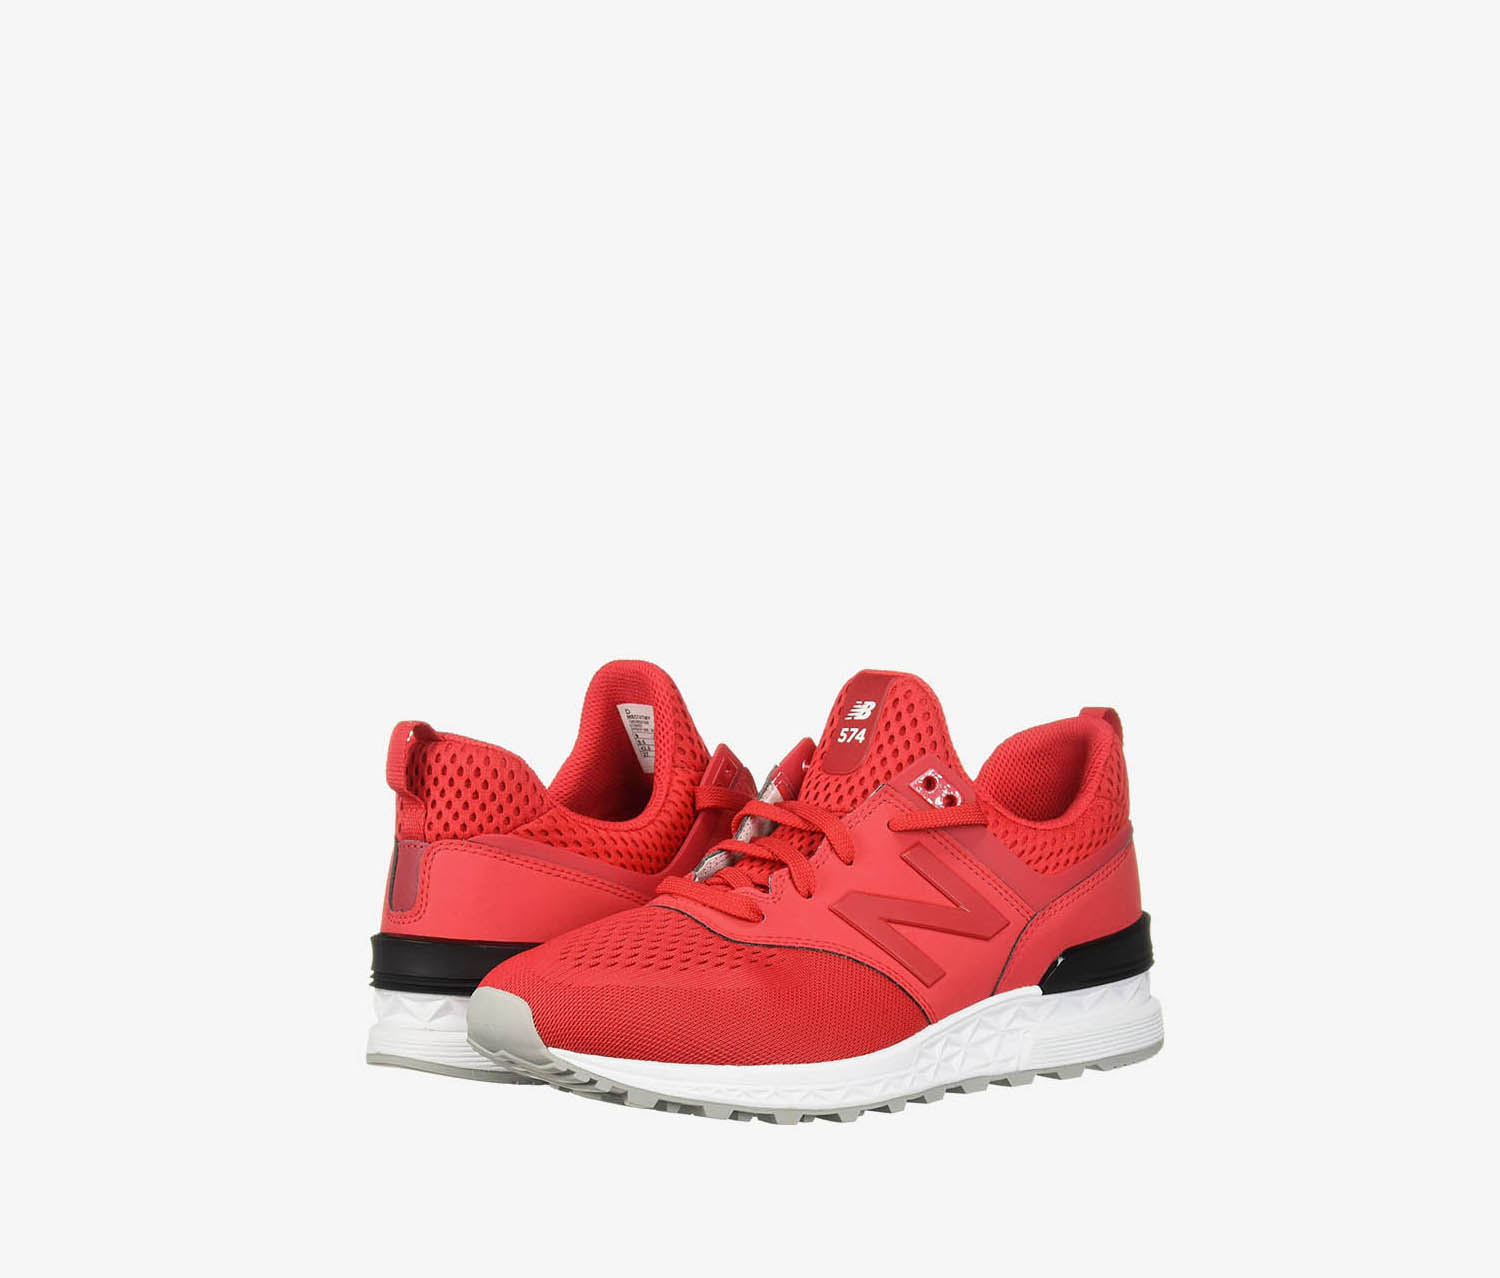 New Balance Men's Sports Shoes, Red